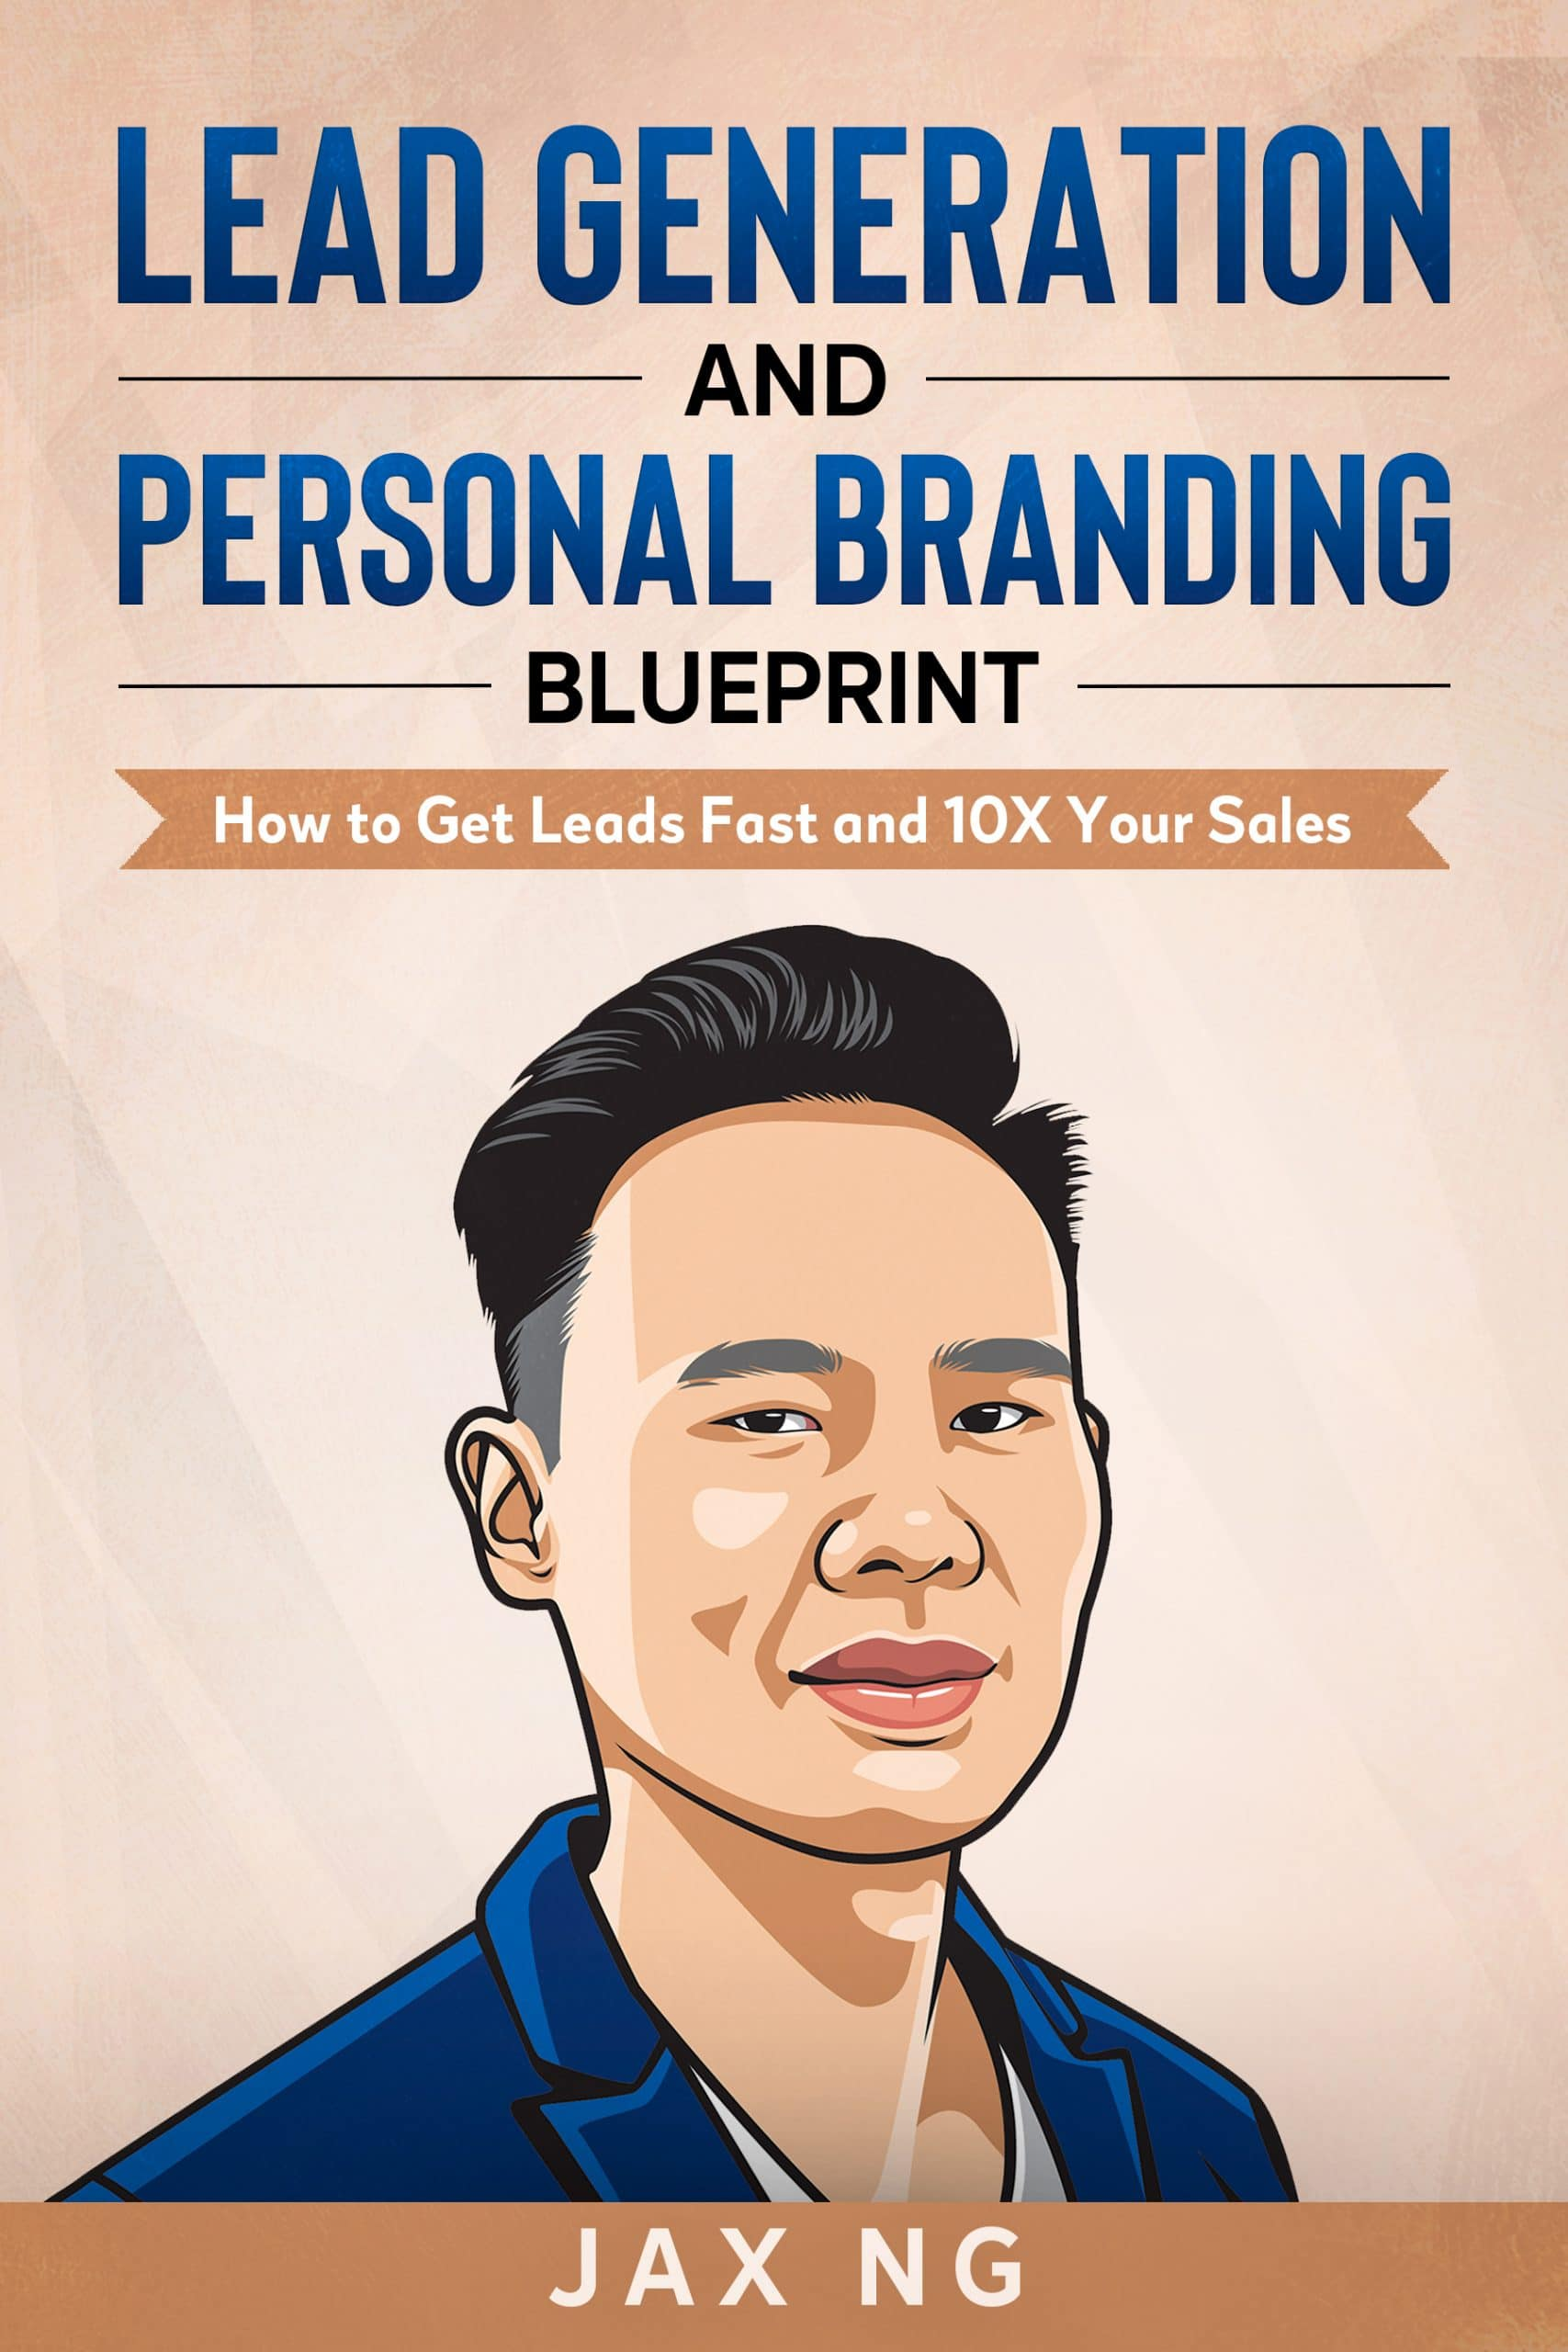 Jax Ng - Personal Branding and Lead Generation Blueprint - How to Get Leads Fast and 10X Your Sales